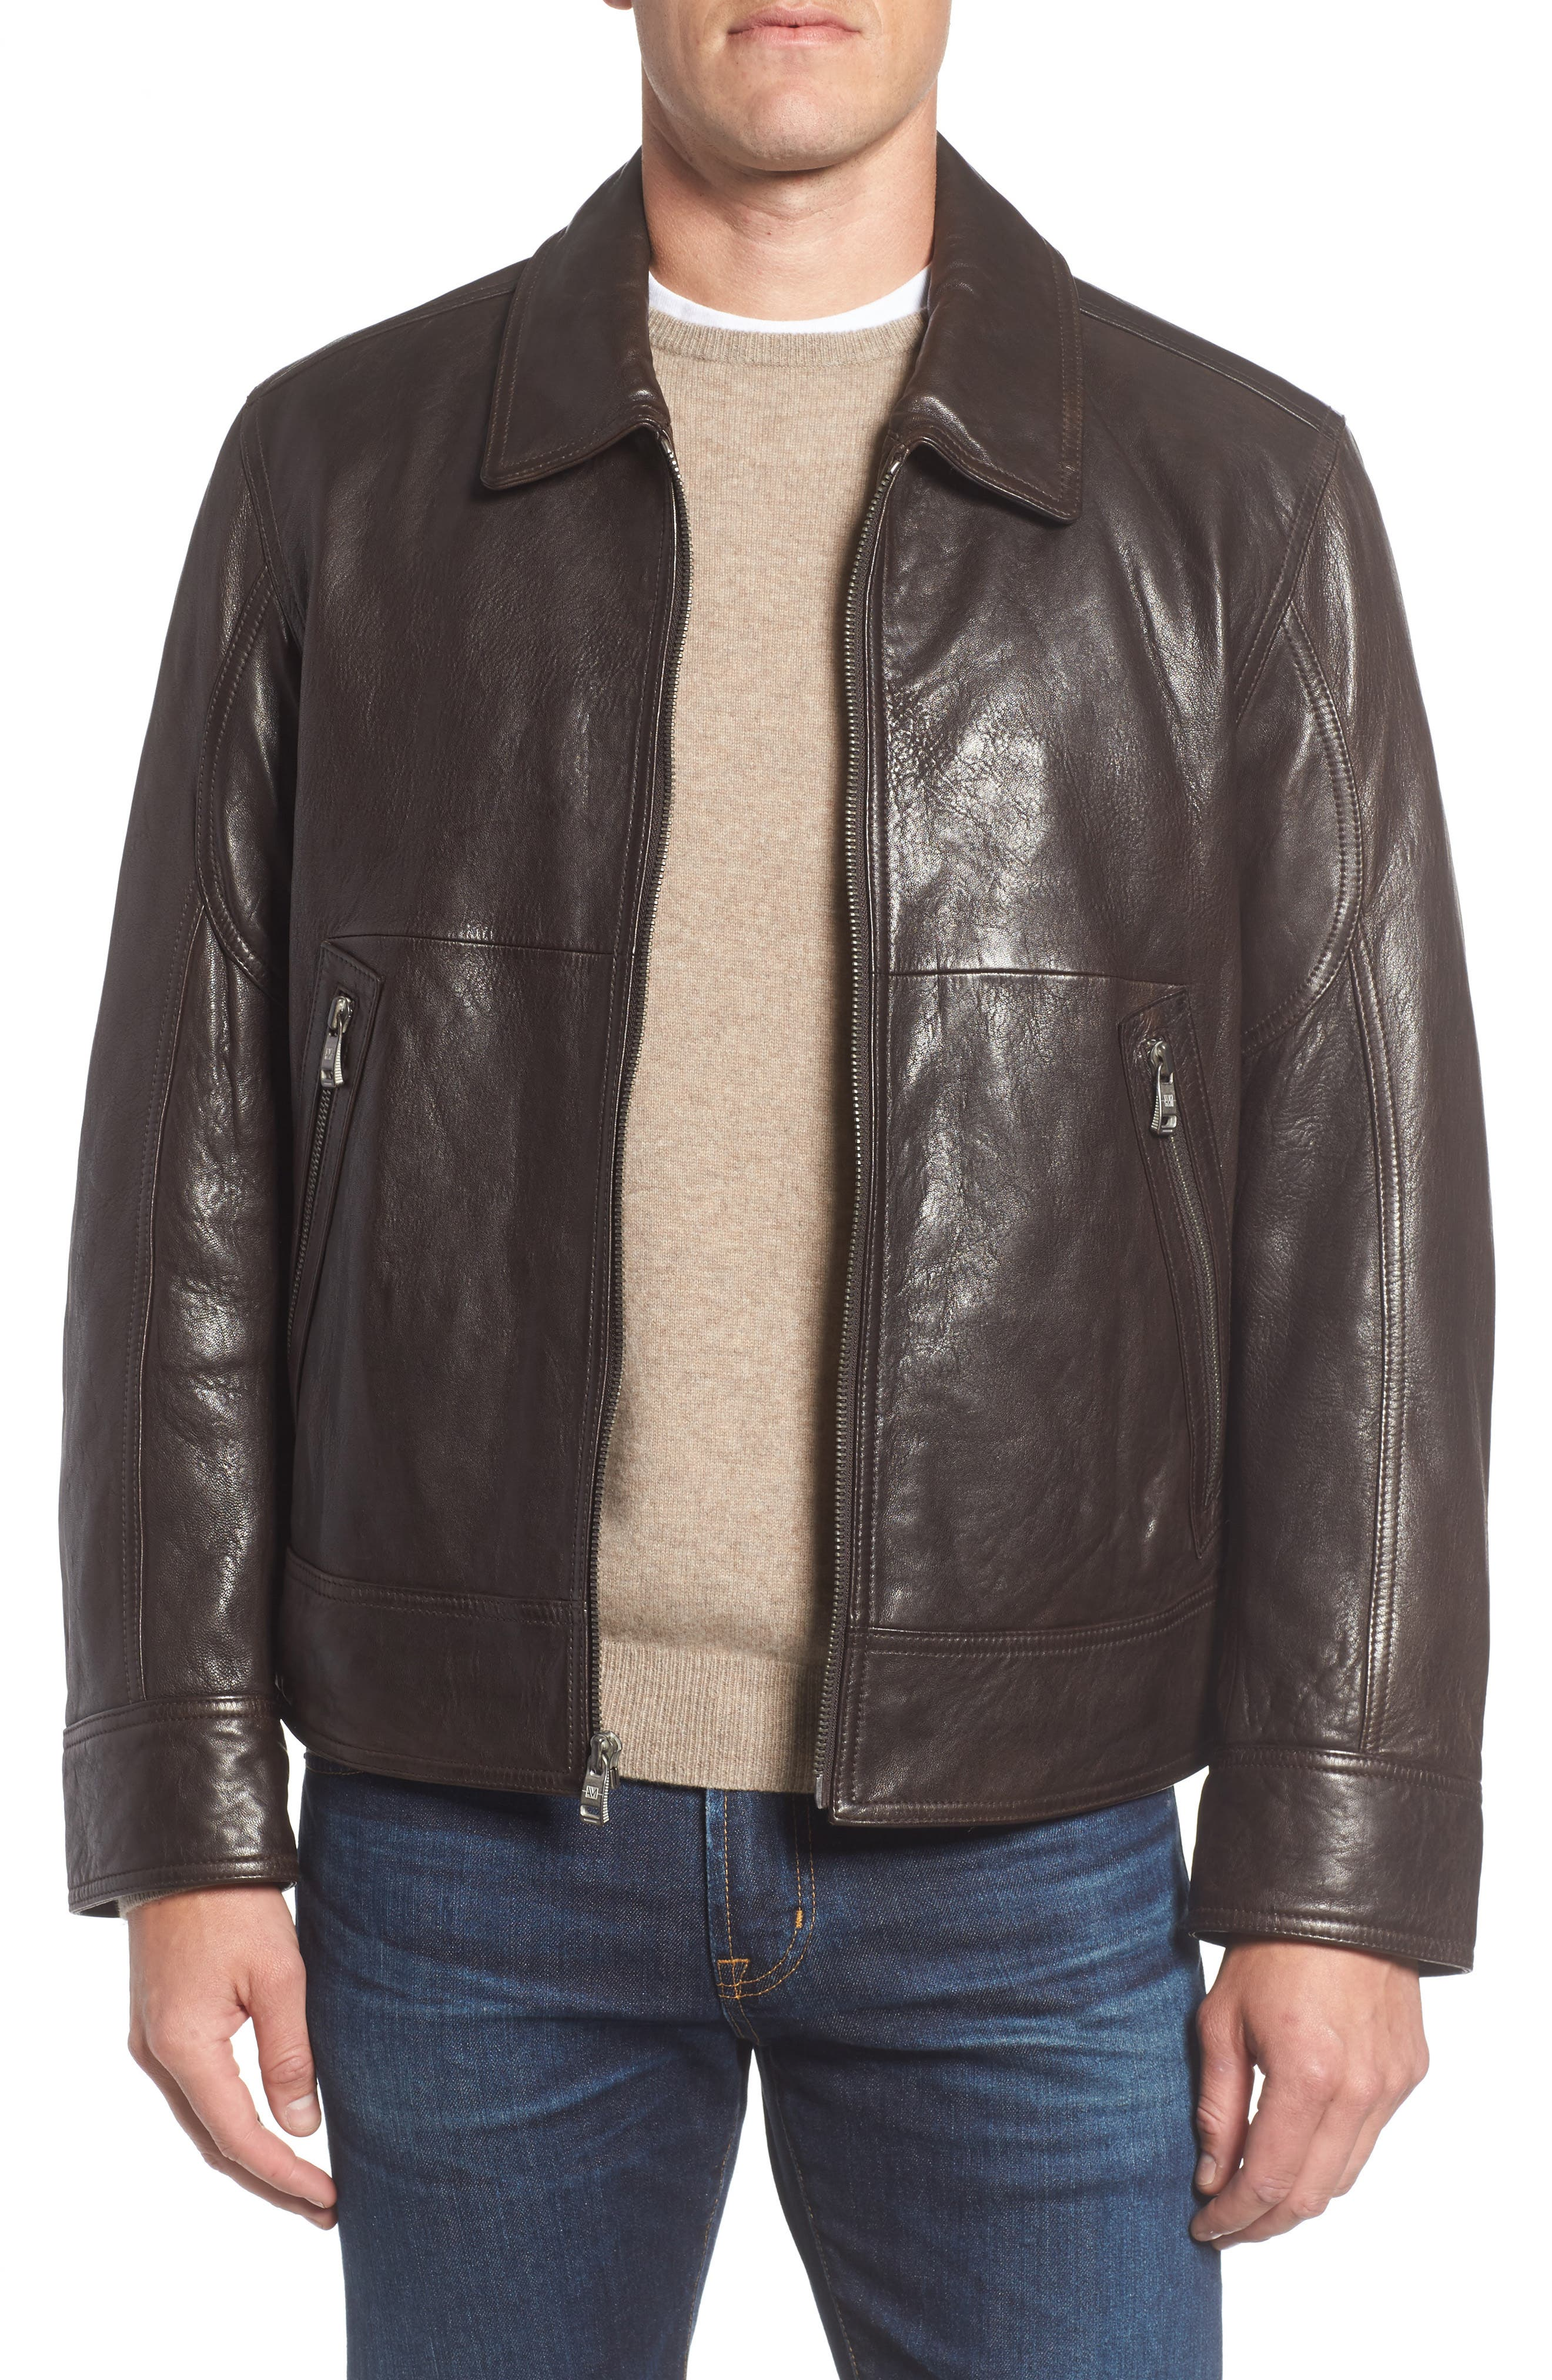 Morrison Spread Collar Leather Jacket,                             Main thumbnail 1, color,                             200